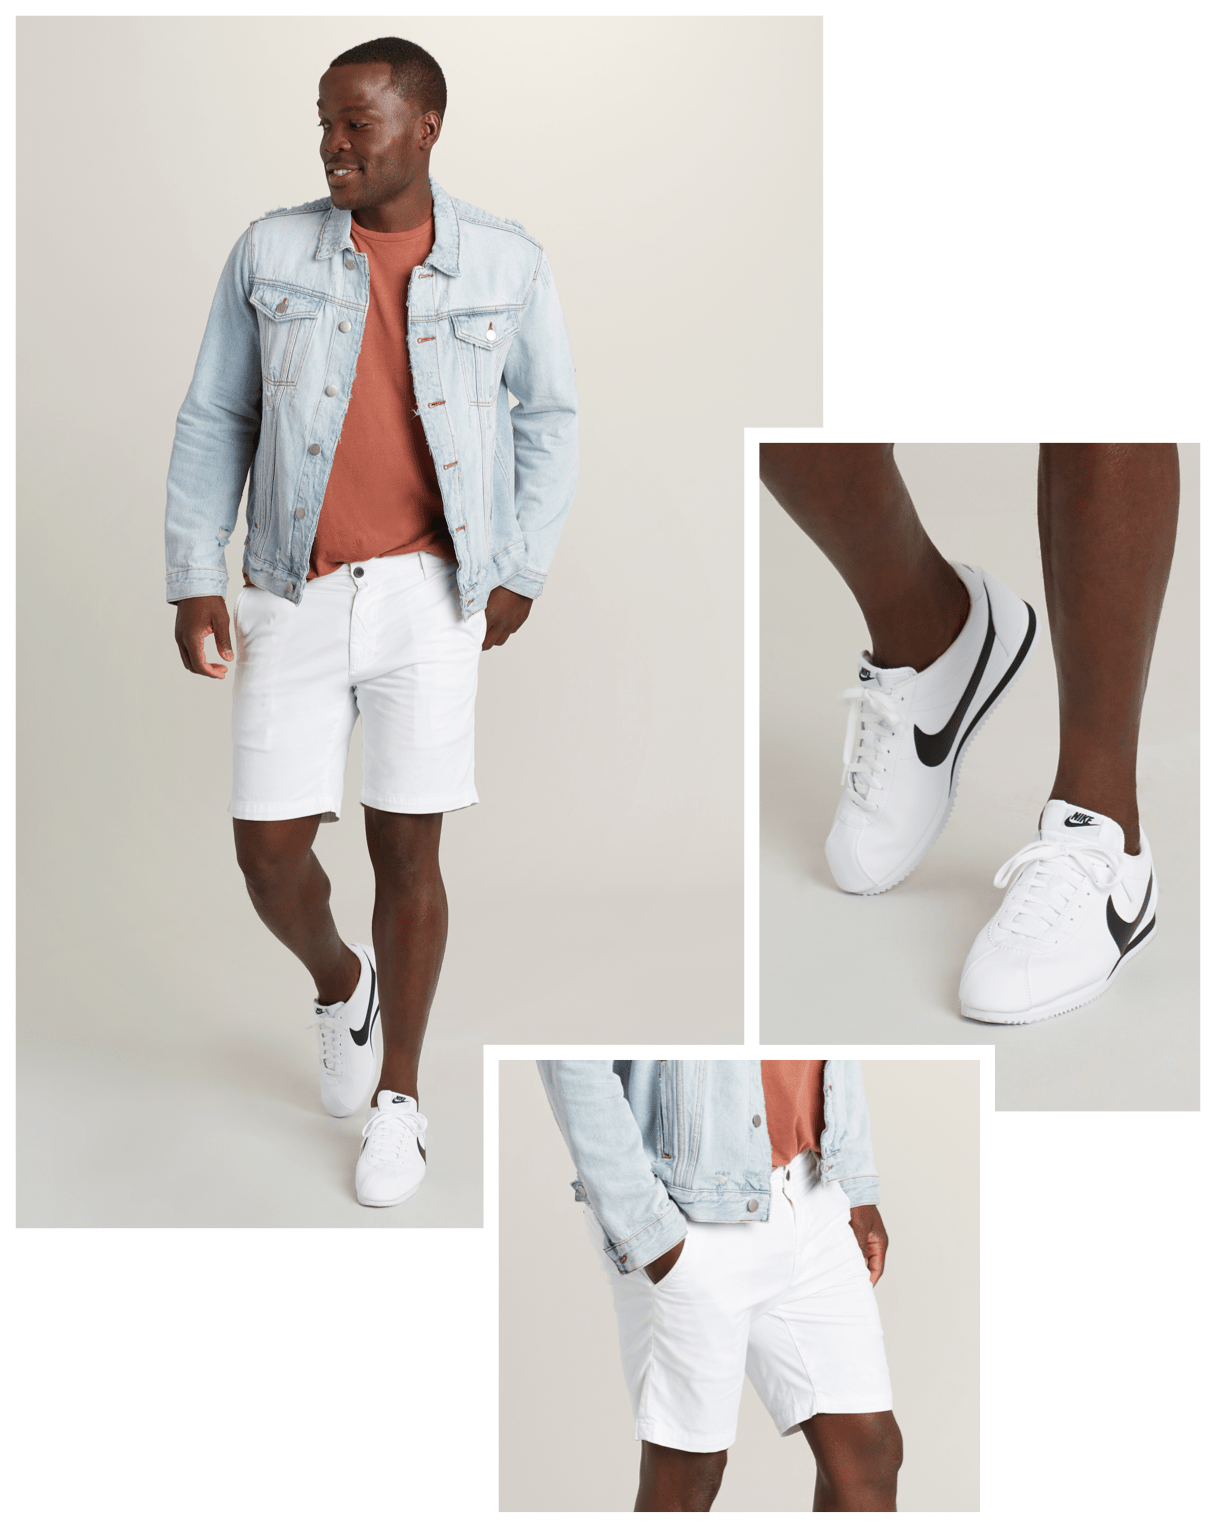 Ball game look for men